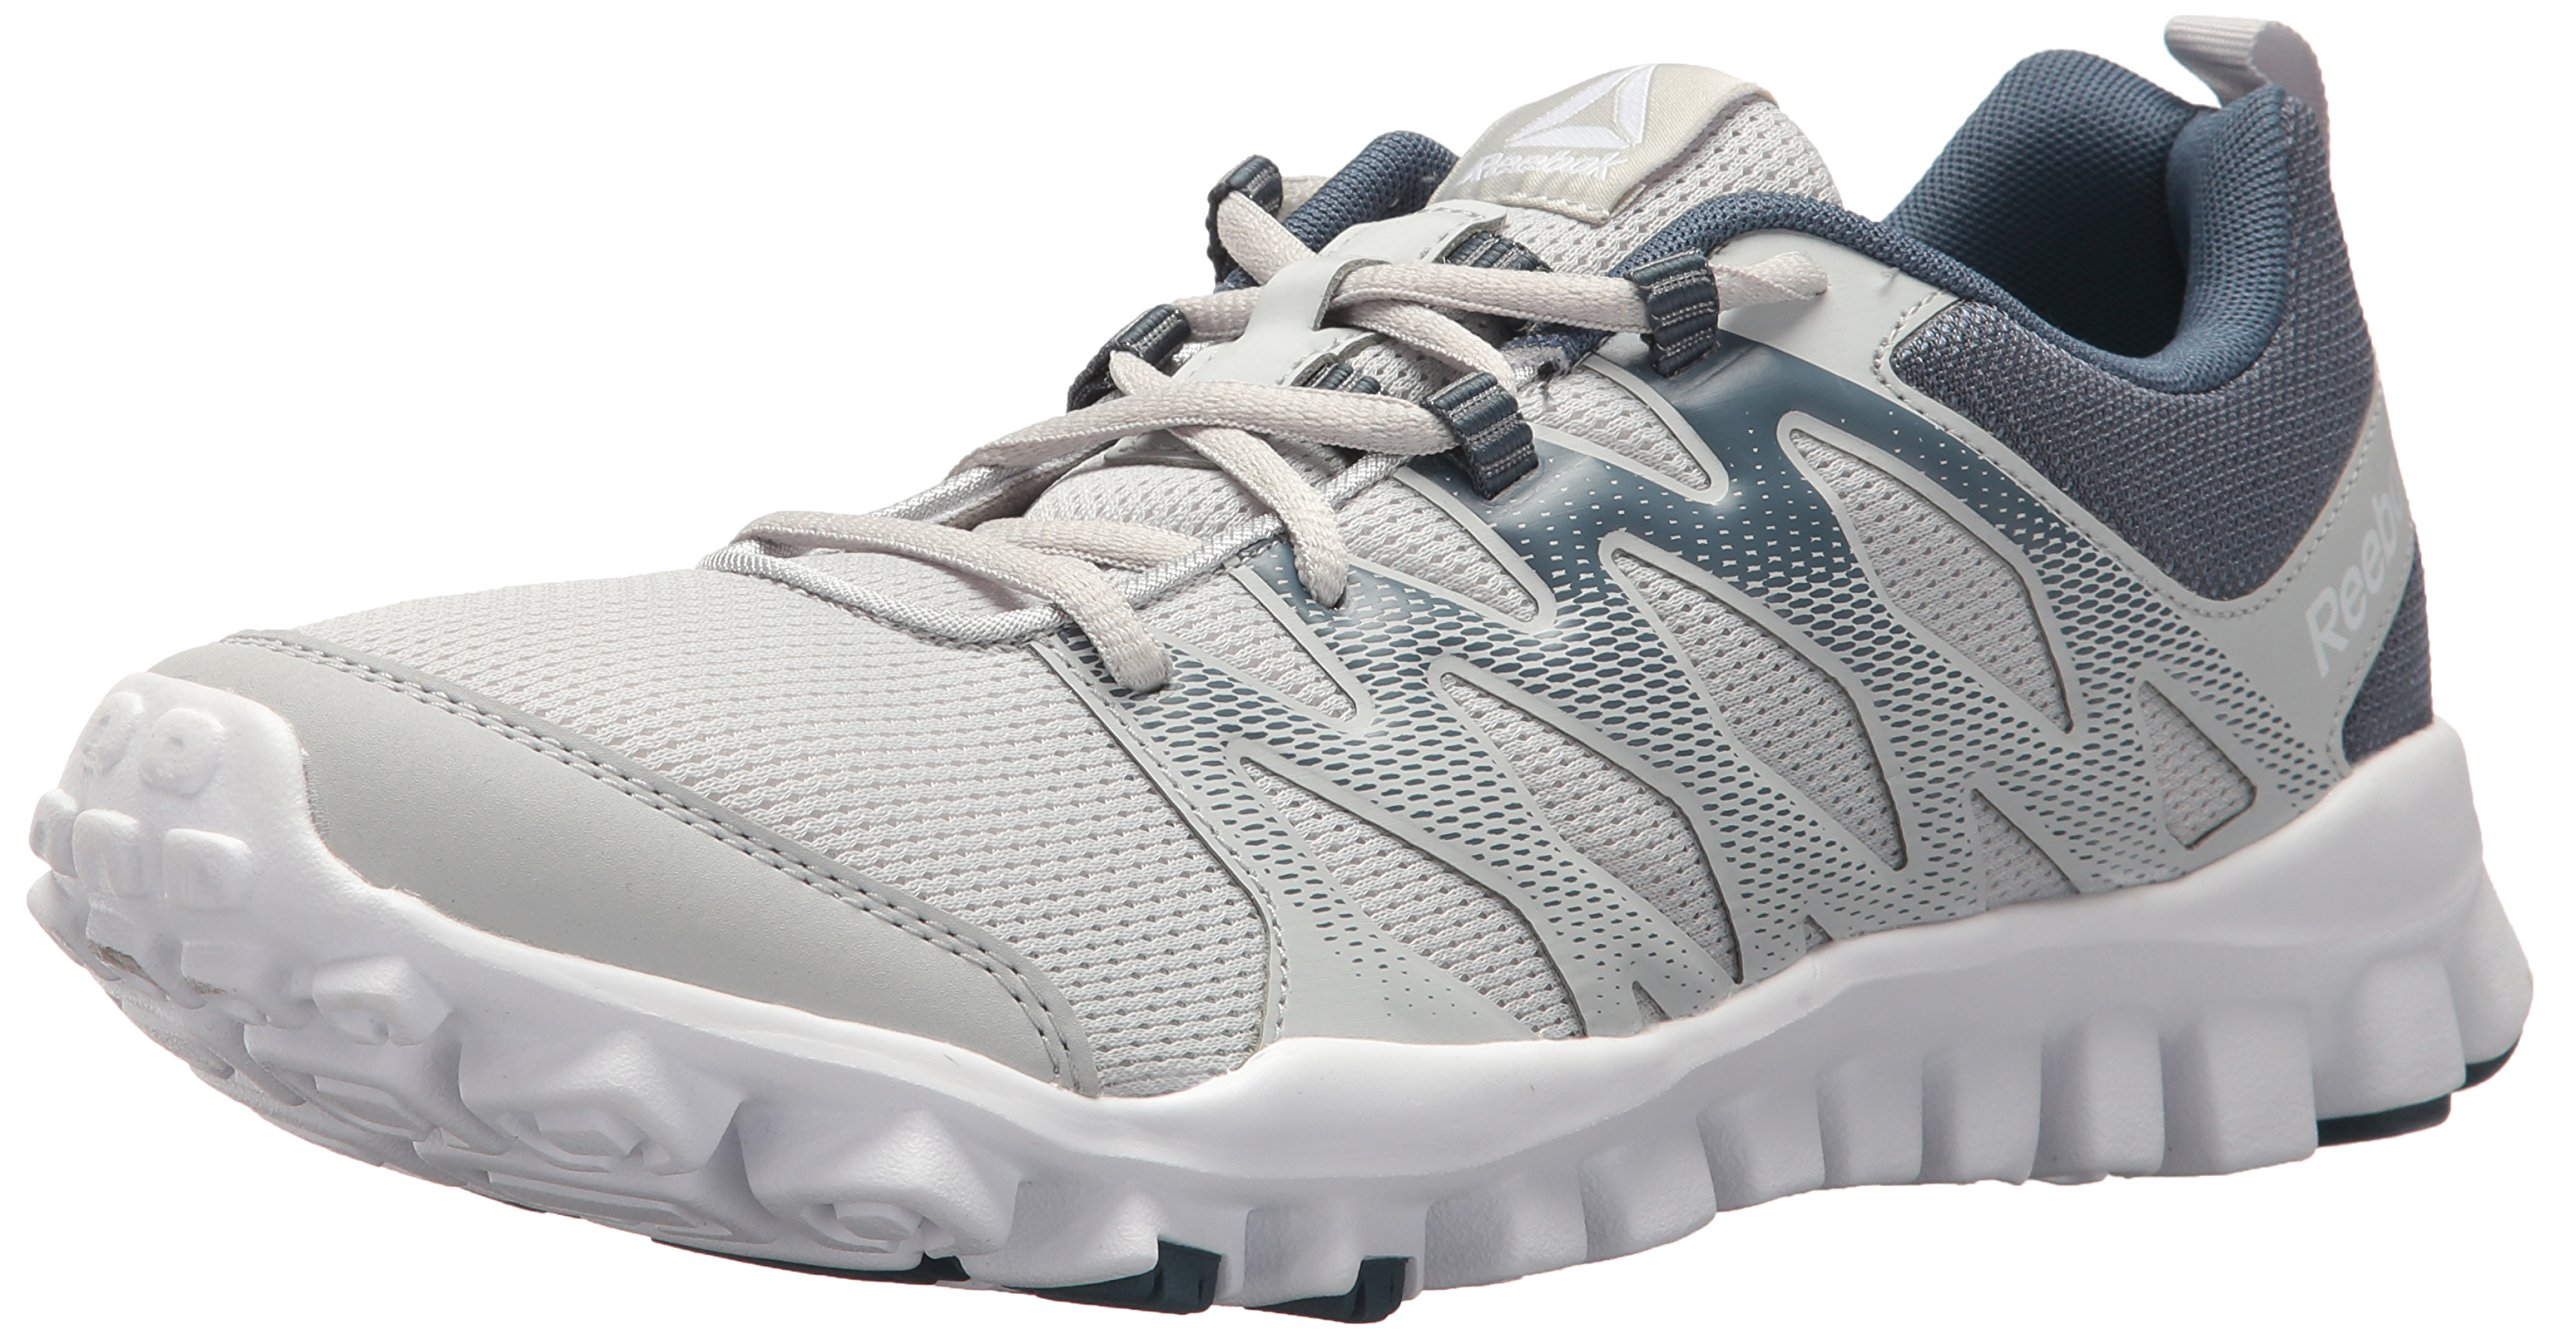 a1f493654eb3 Galleon - Reebok Men's Realflex Train 4.0 Cross Trainer, Skull Paynes  Grey/Solid Teal, 8 M US